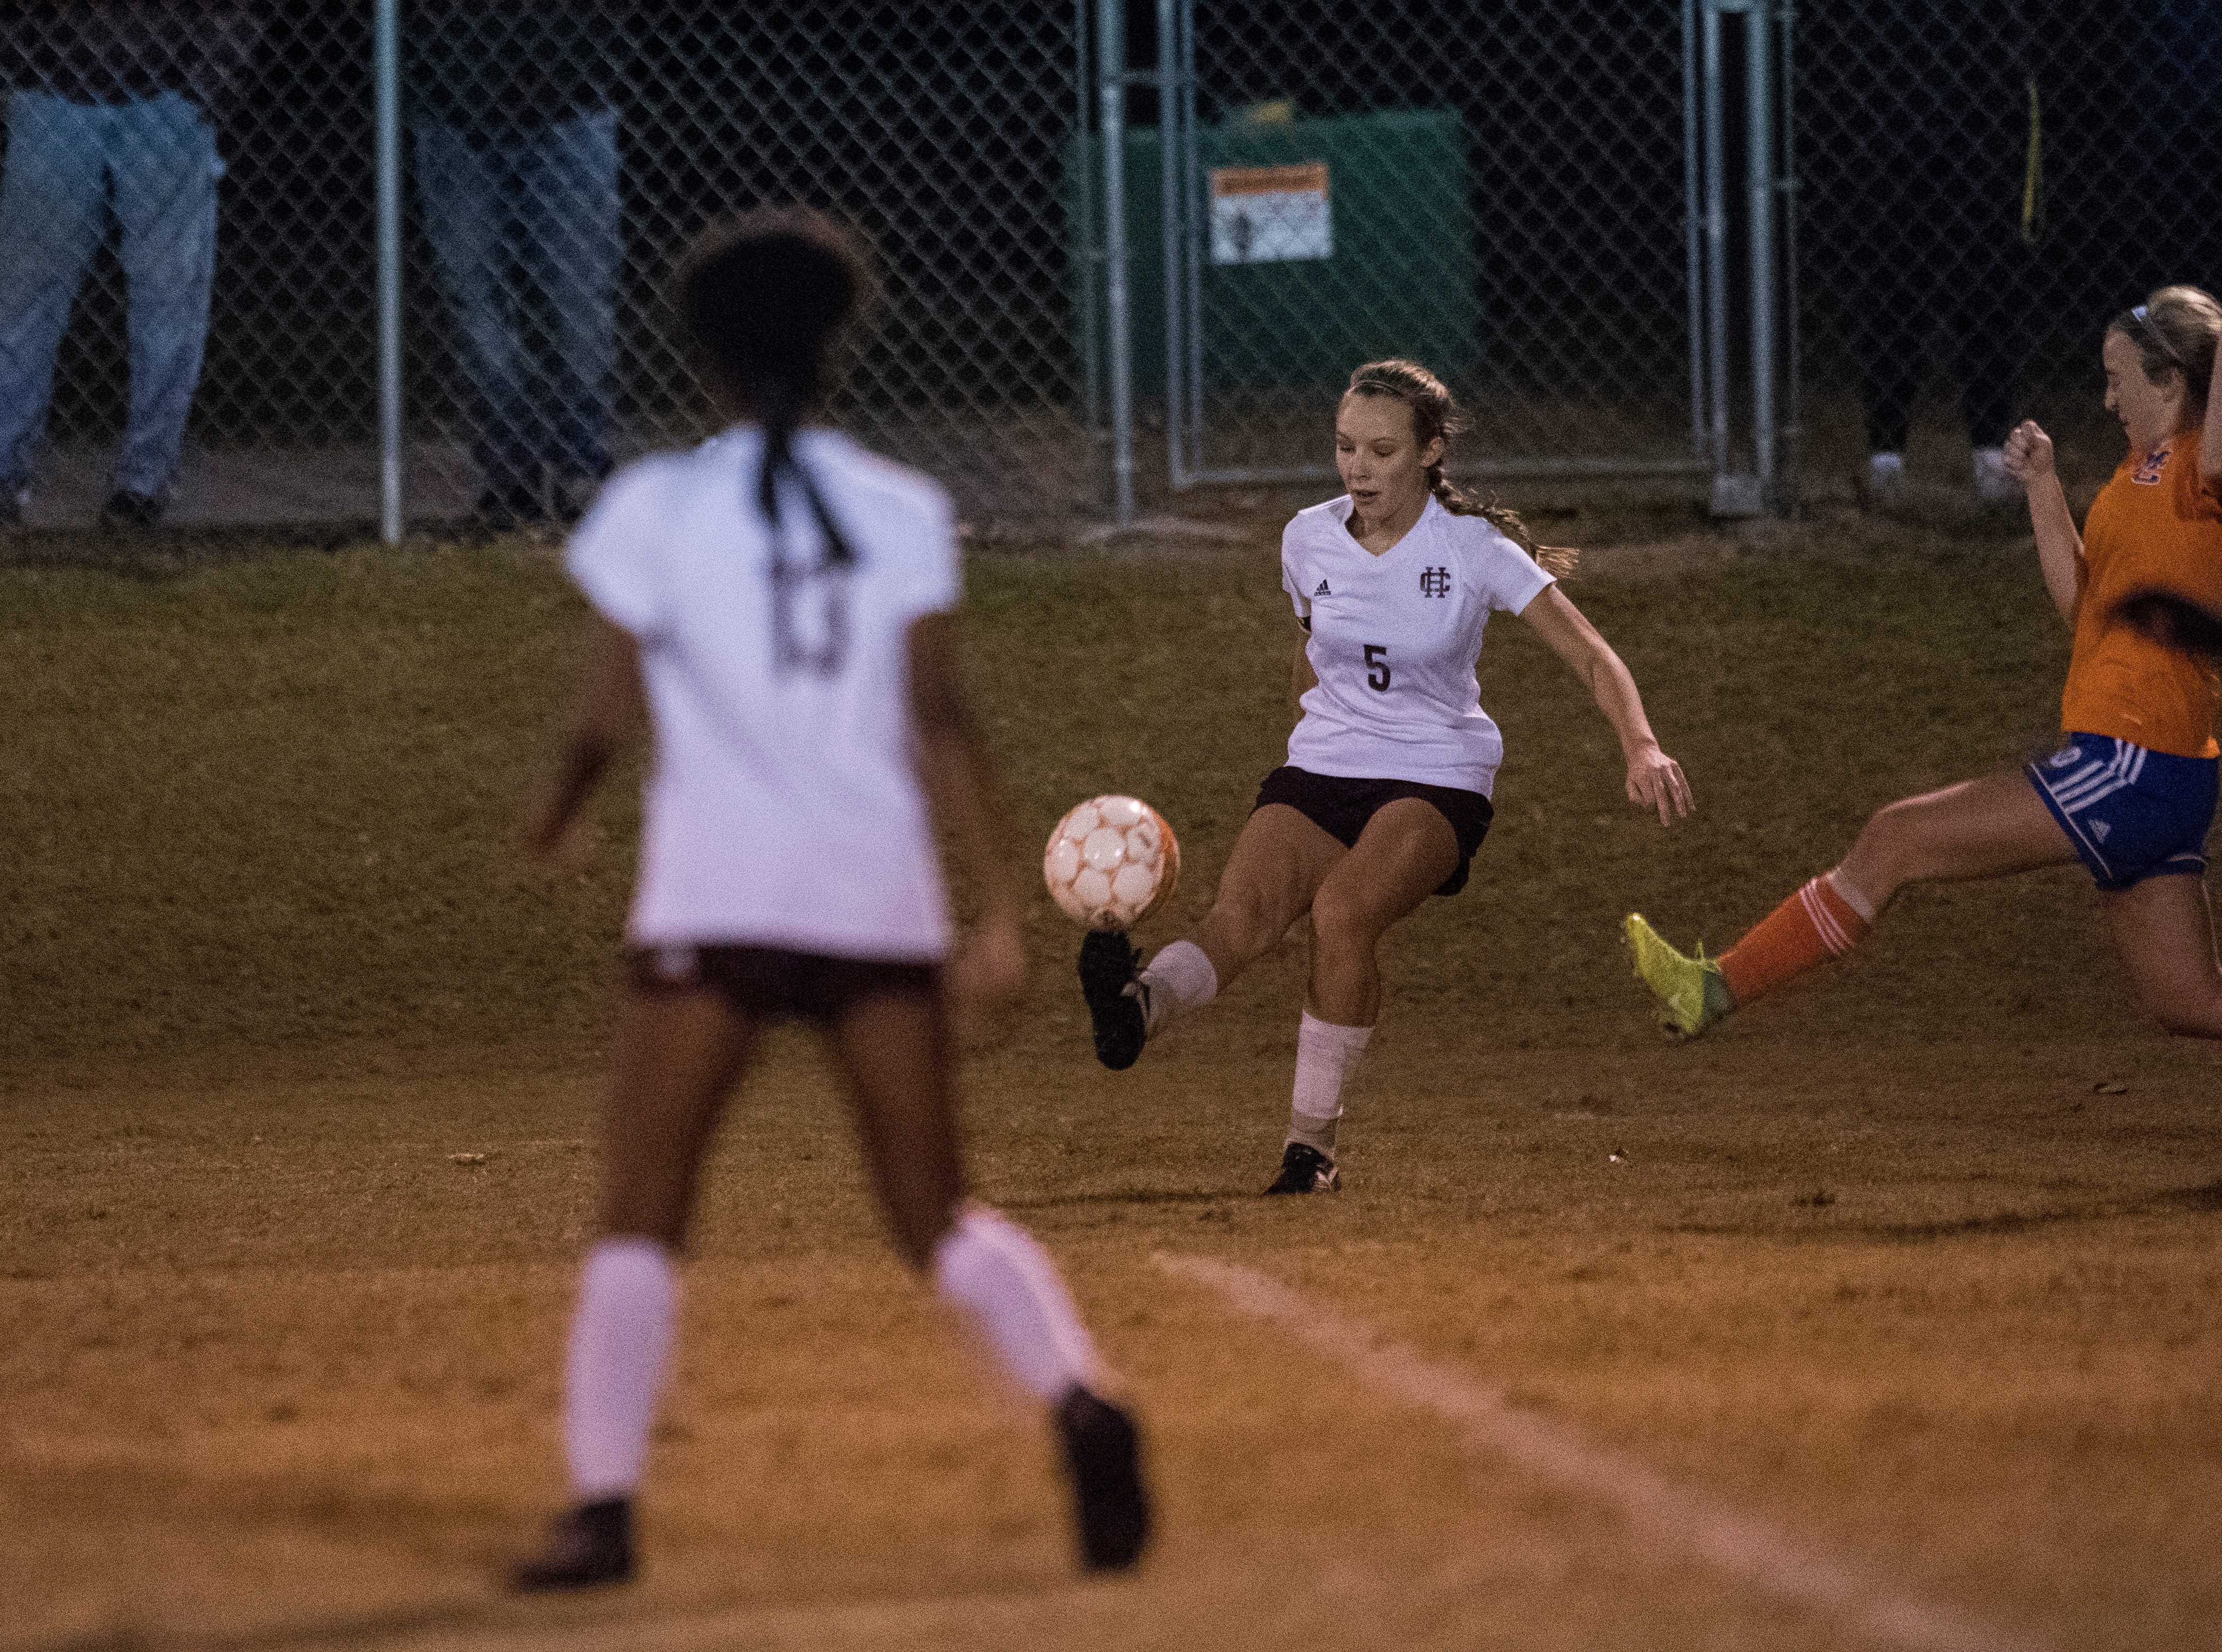 Henderson's Maddie Griggs (5) passes the ball to Henderson's Nadia Gilbert (13) during the first round of the KHSAA state tournament at Marshall County High School Monday, Oct. 23, 2018.